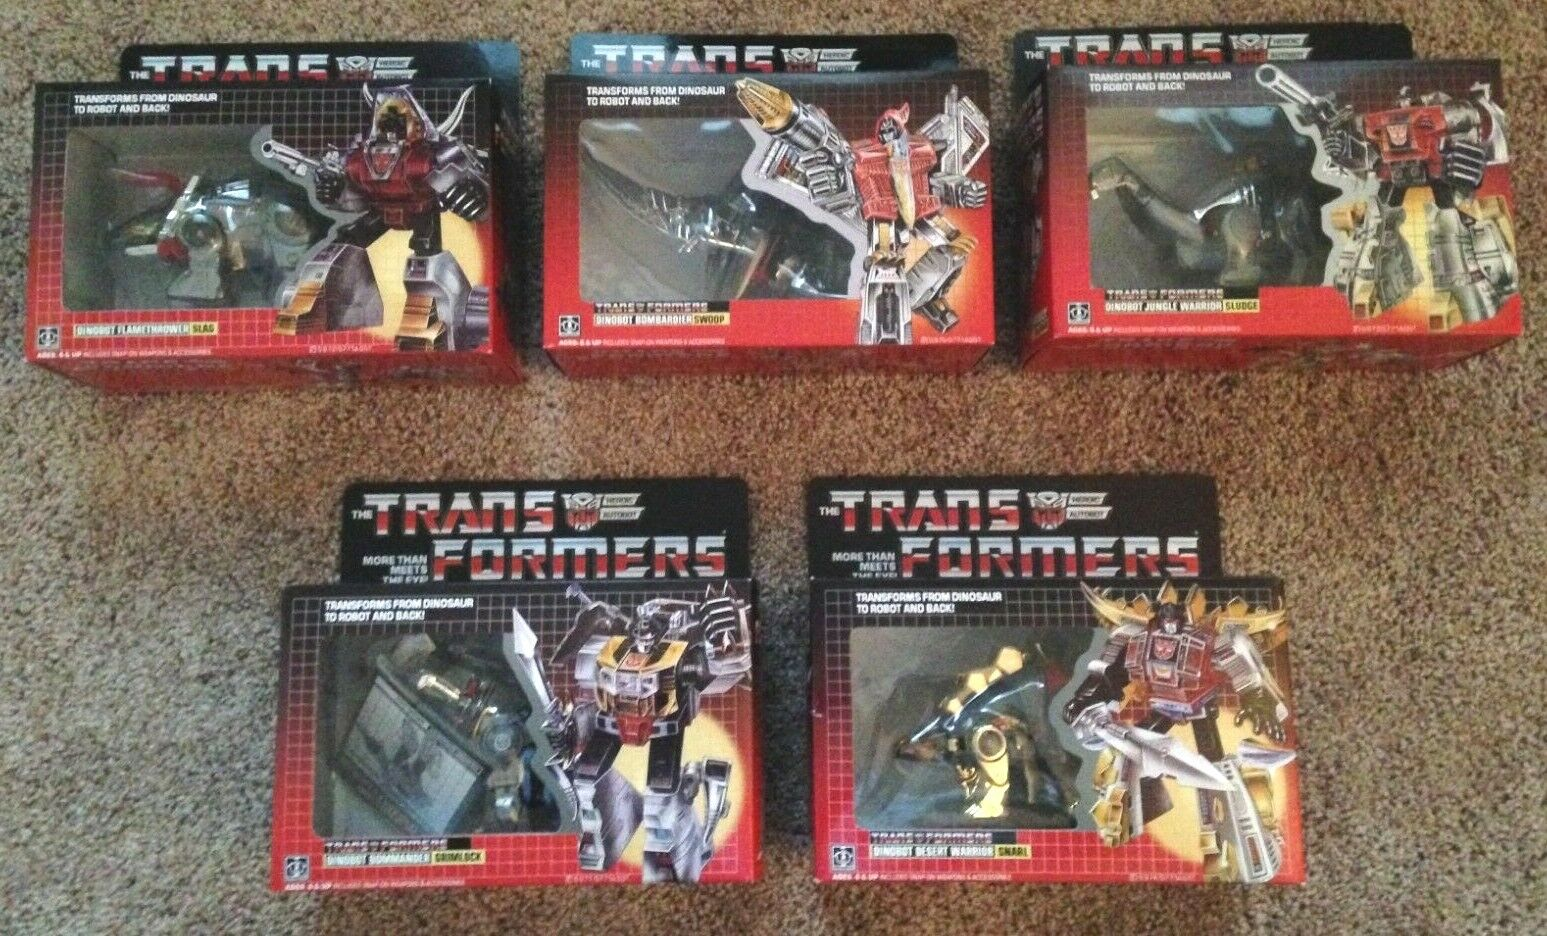 Transformers Dinobots Set - REISSUE NEW IN BOX NEVER OPENED